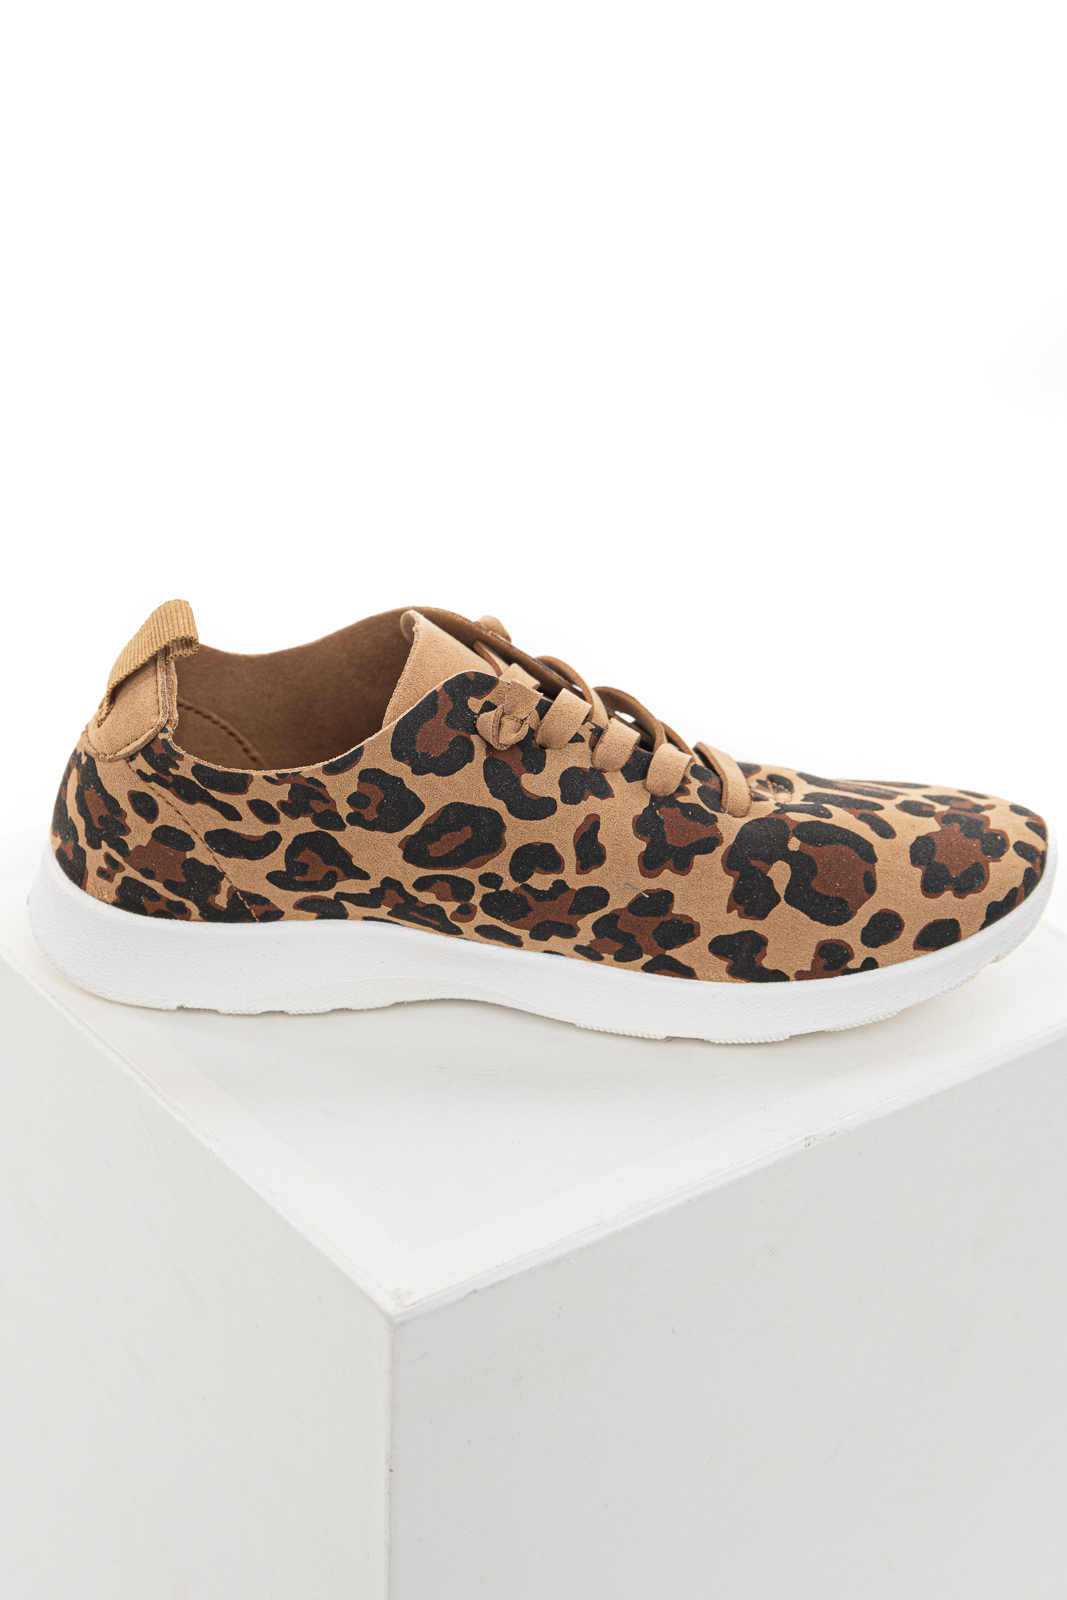 Camel Faux Suede Leopard Print Sneakers with Tied Off Laces